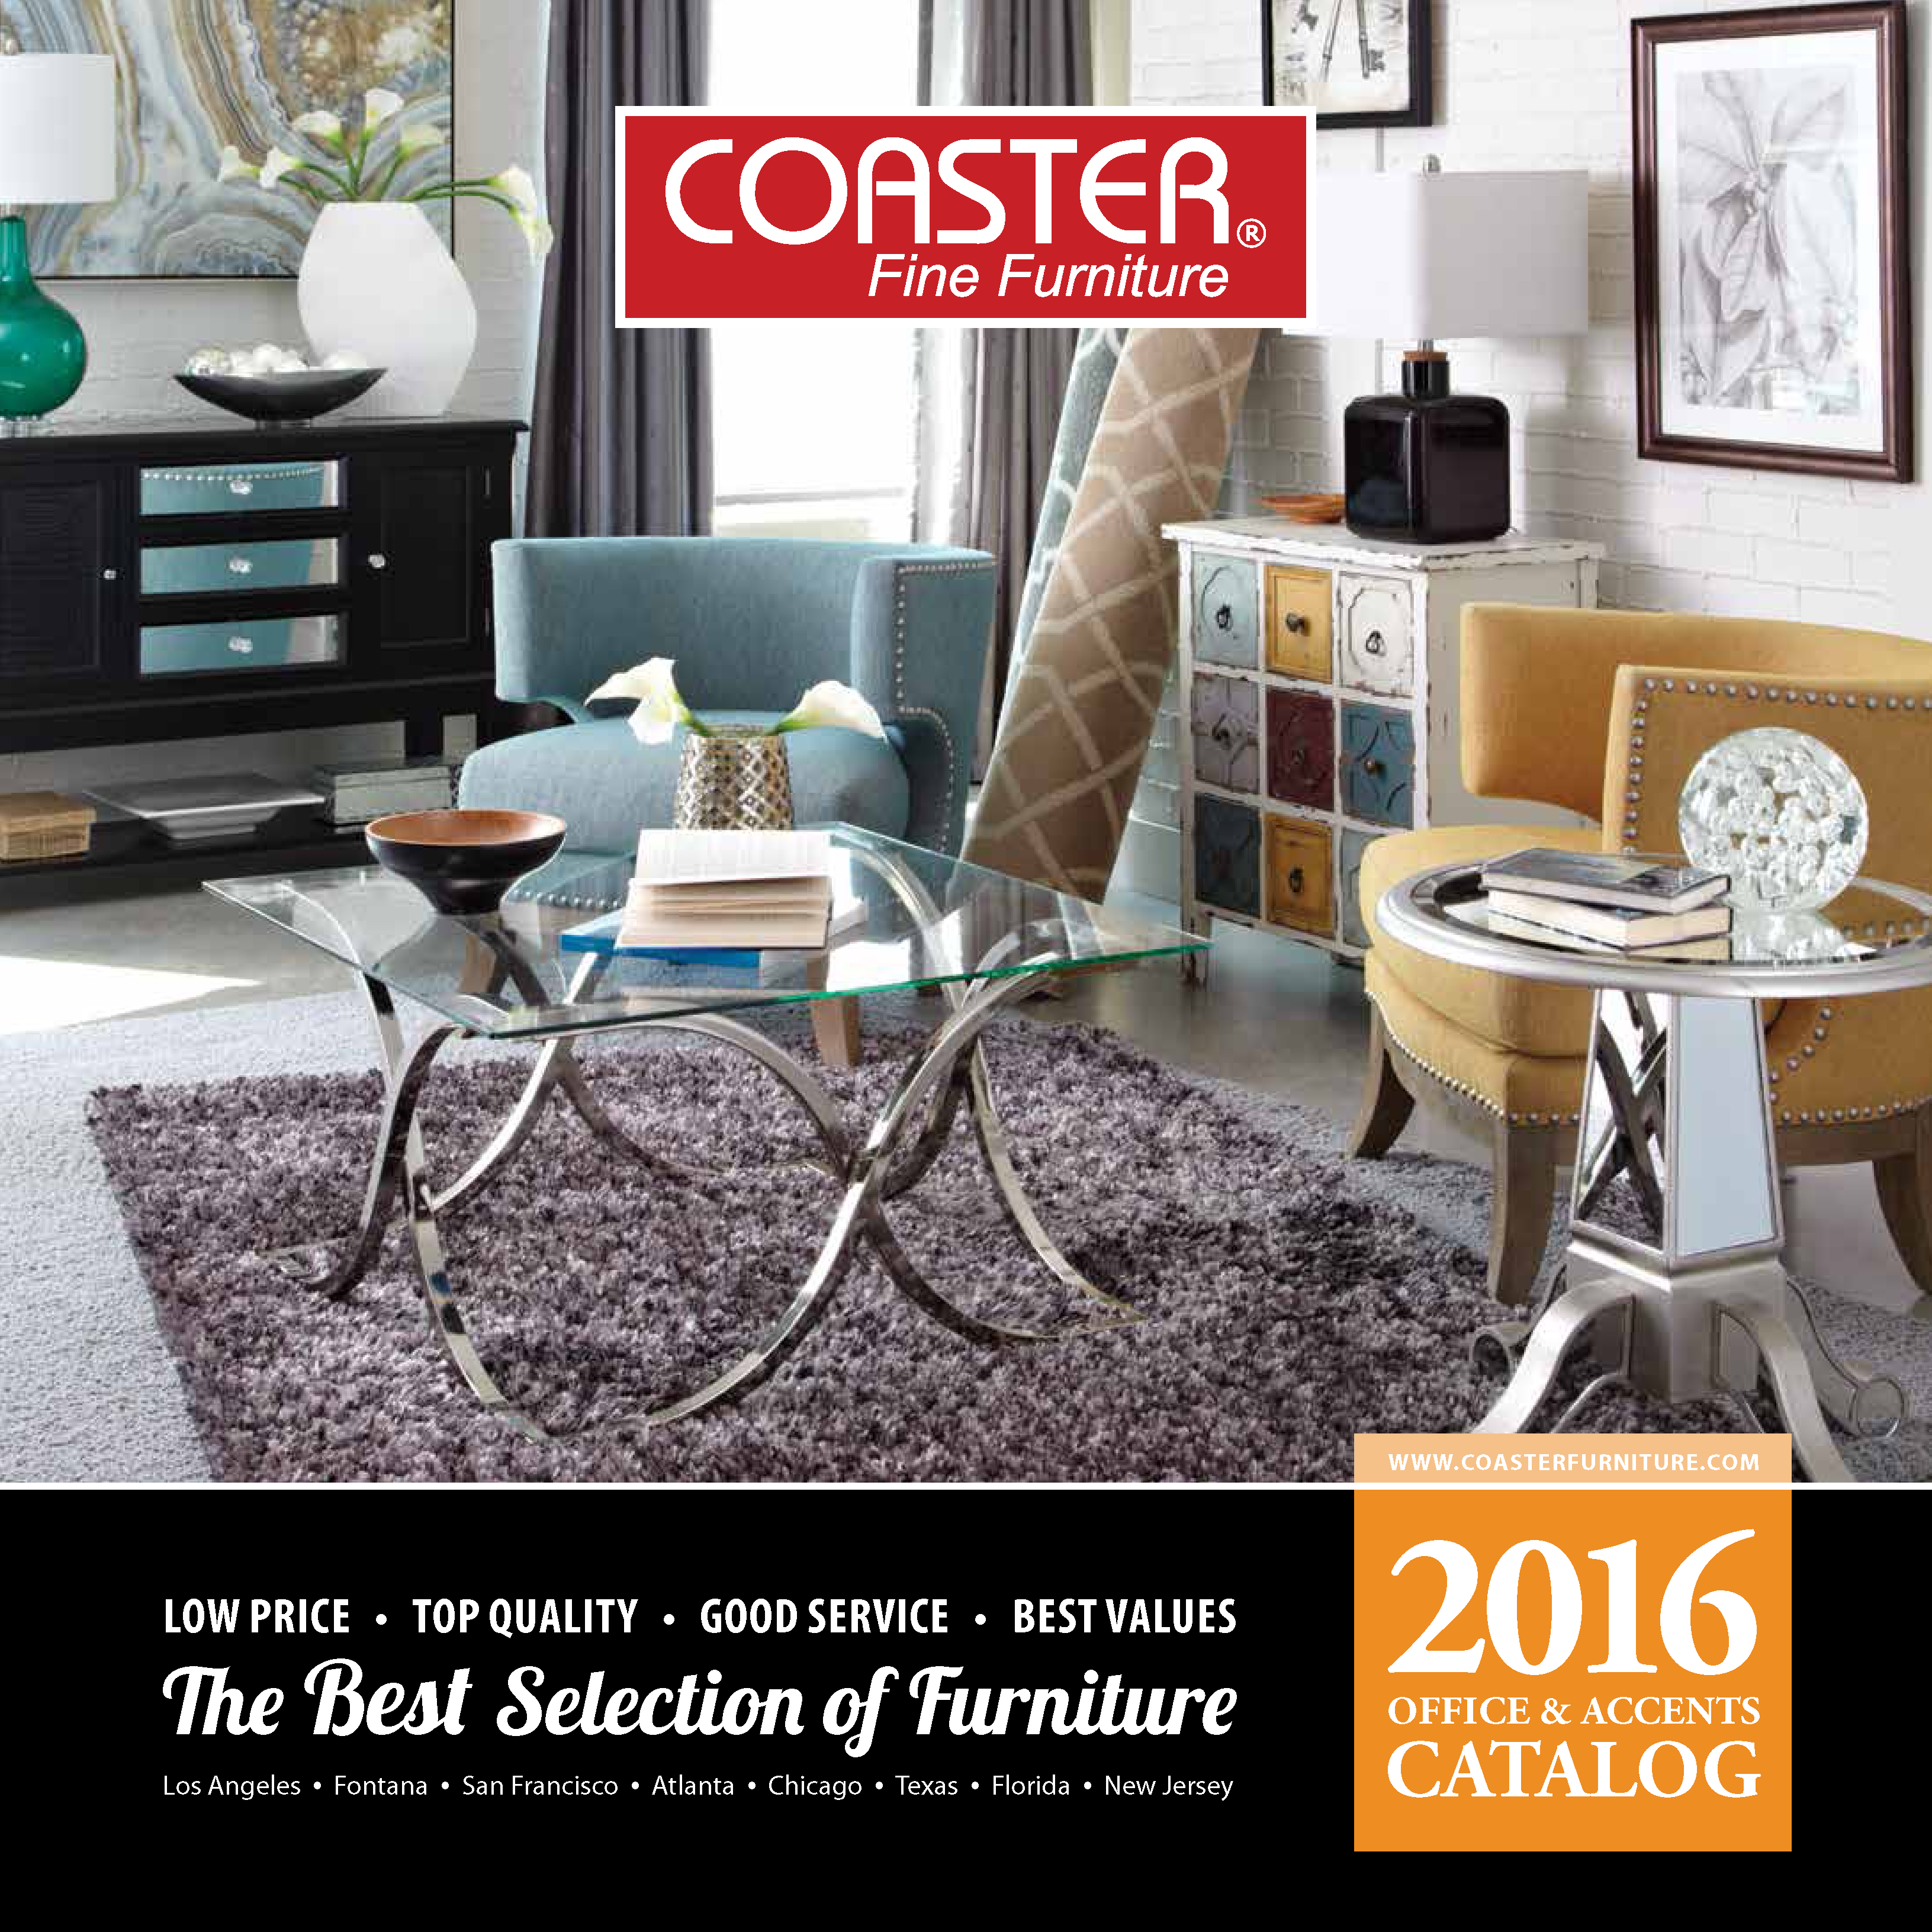 Coaster 2016 Office Accents Catalog Lisys Discount Furniture